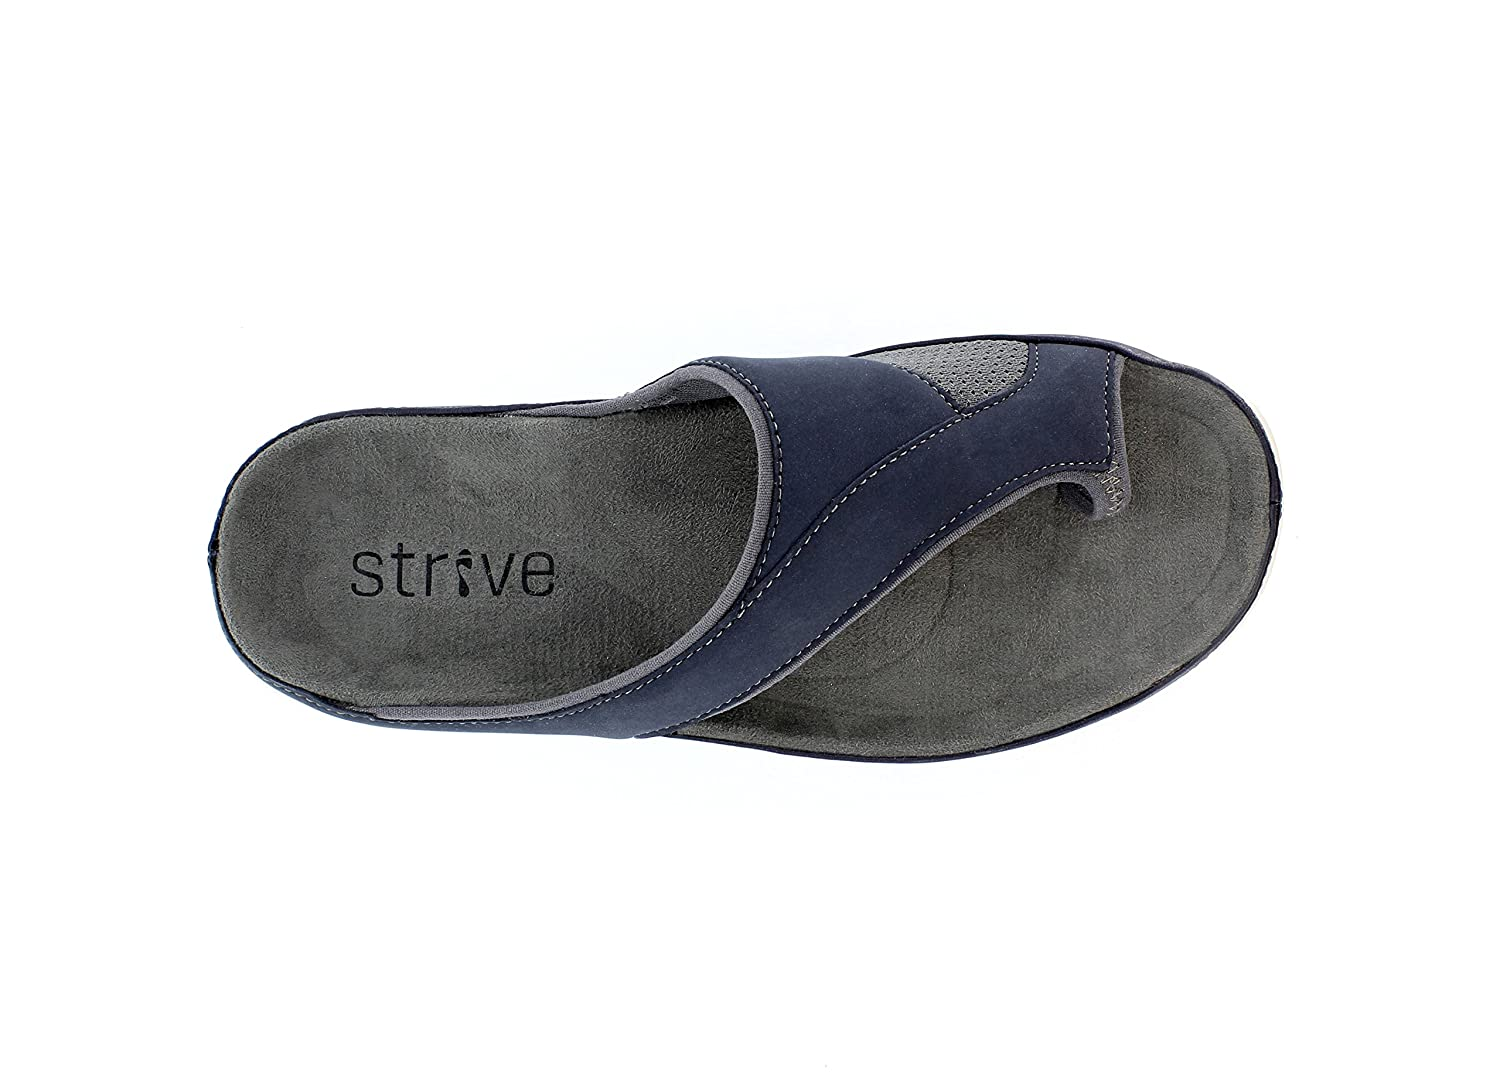 ab43ef90ee26 Strive Footwear Colorado Stylish Orthotic Sandal  Amazon.co.uk  Shoes   Bags